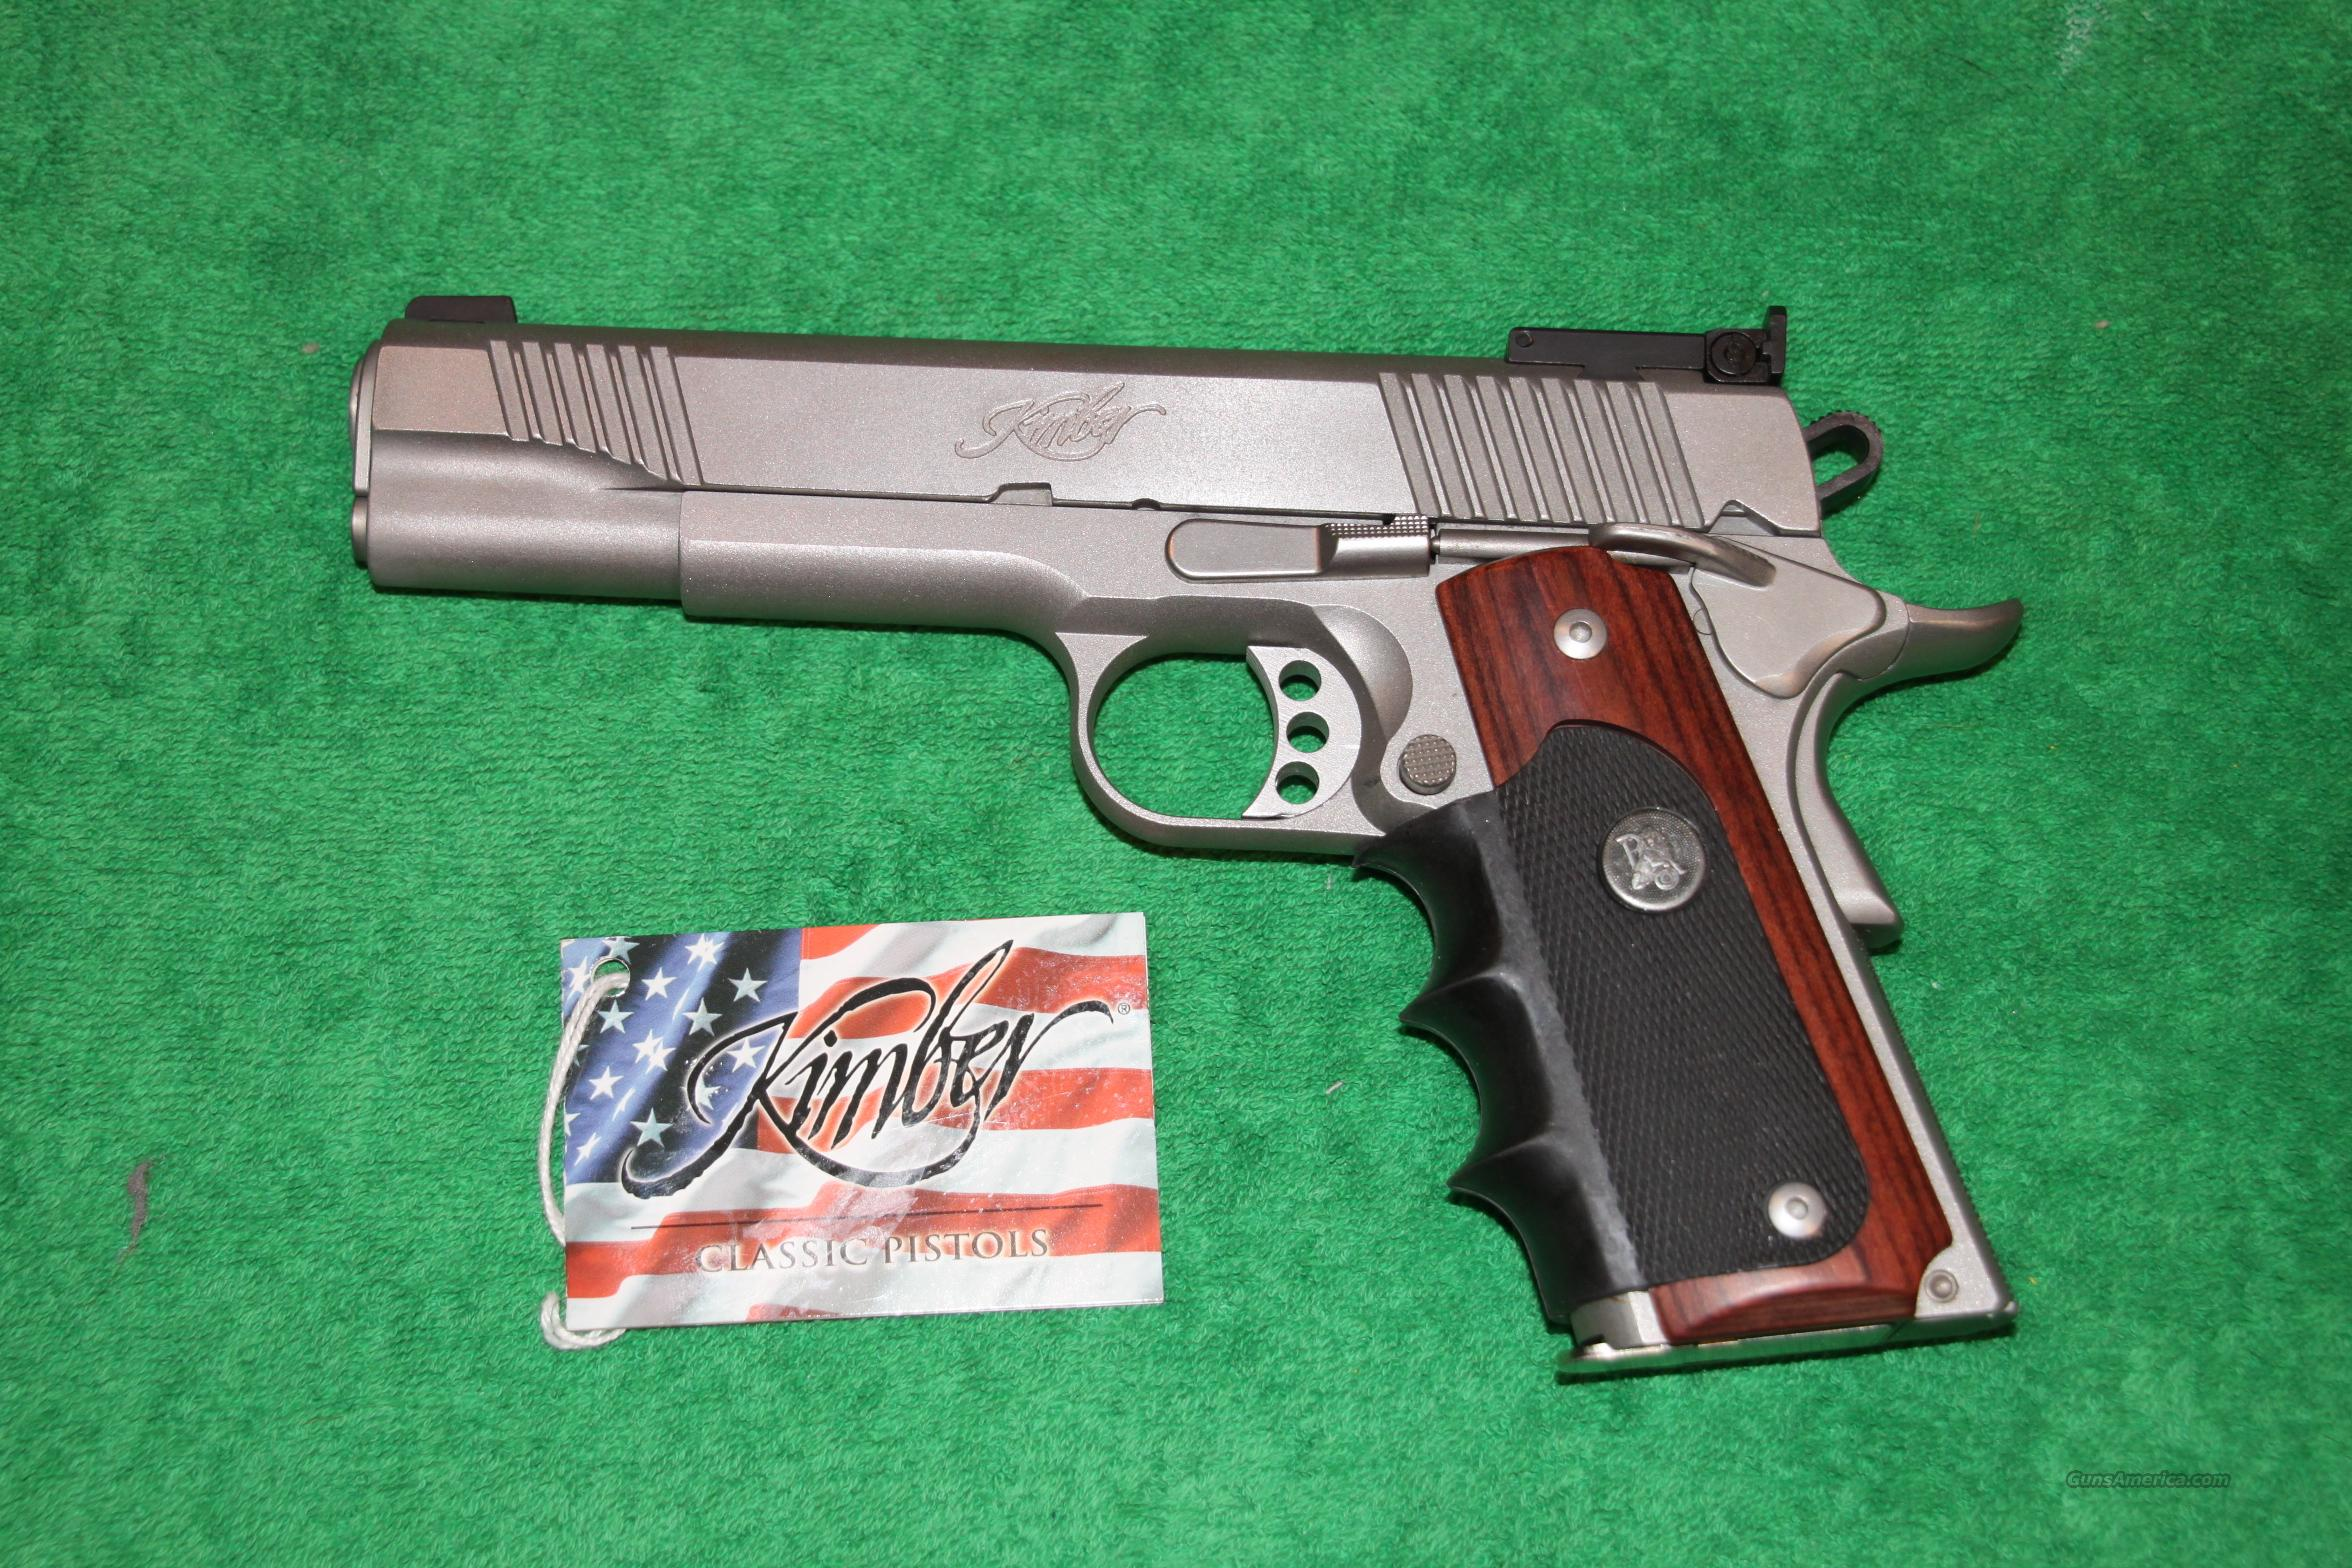 Kimber Stainless Target .40 S&W  Guns > Pistols > 1911 Pistol Copies (non-Colt)